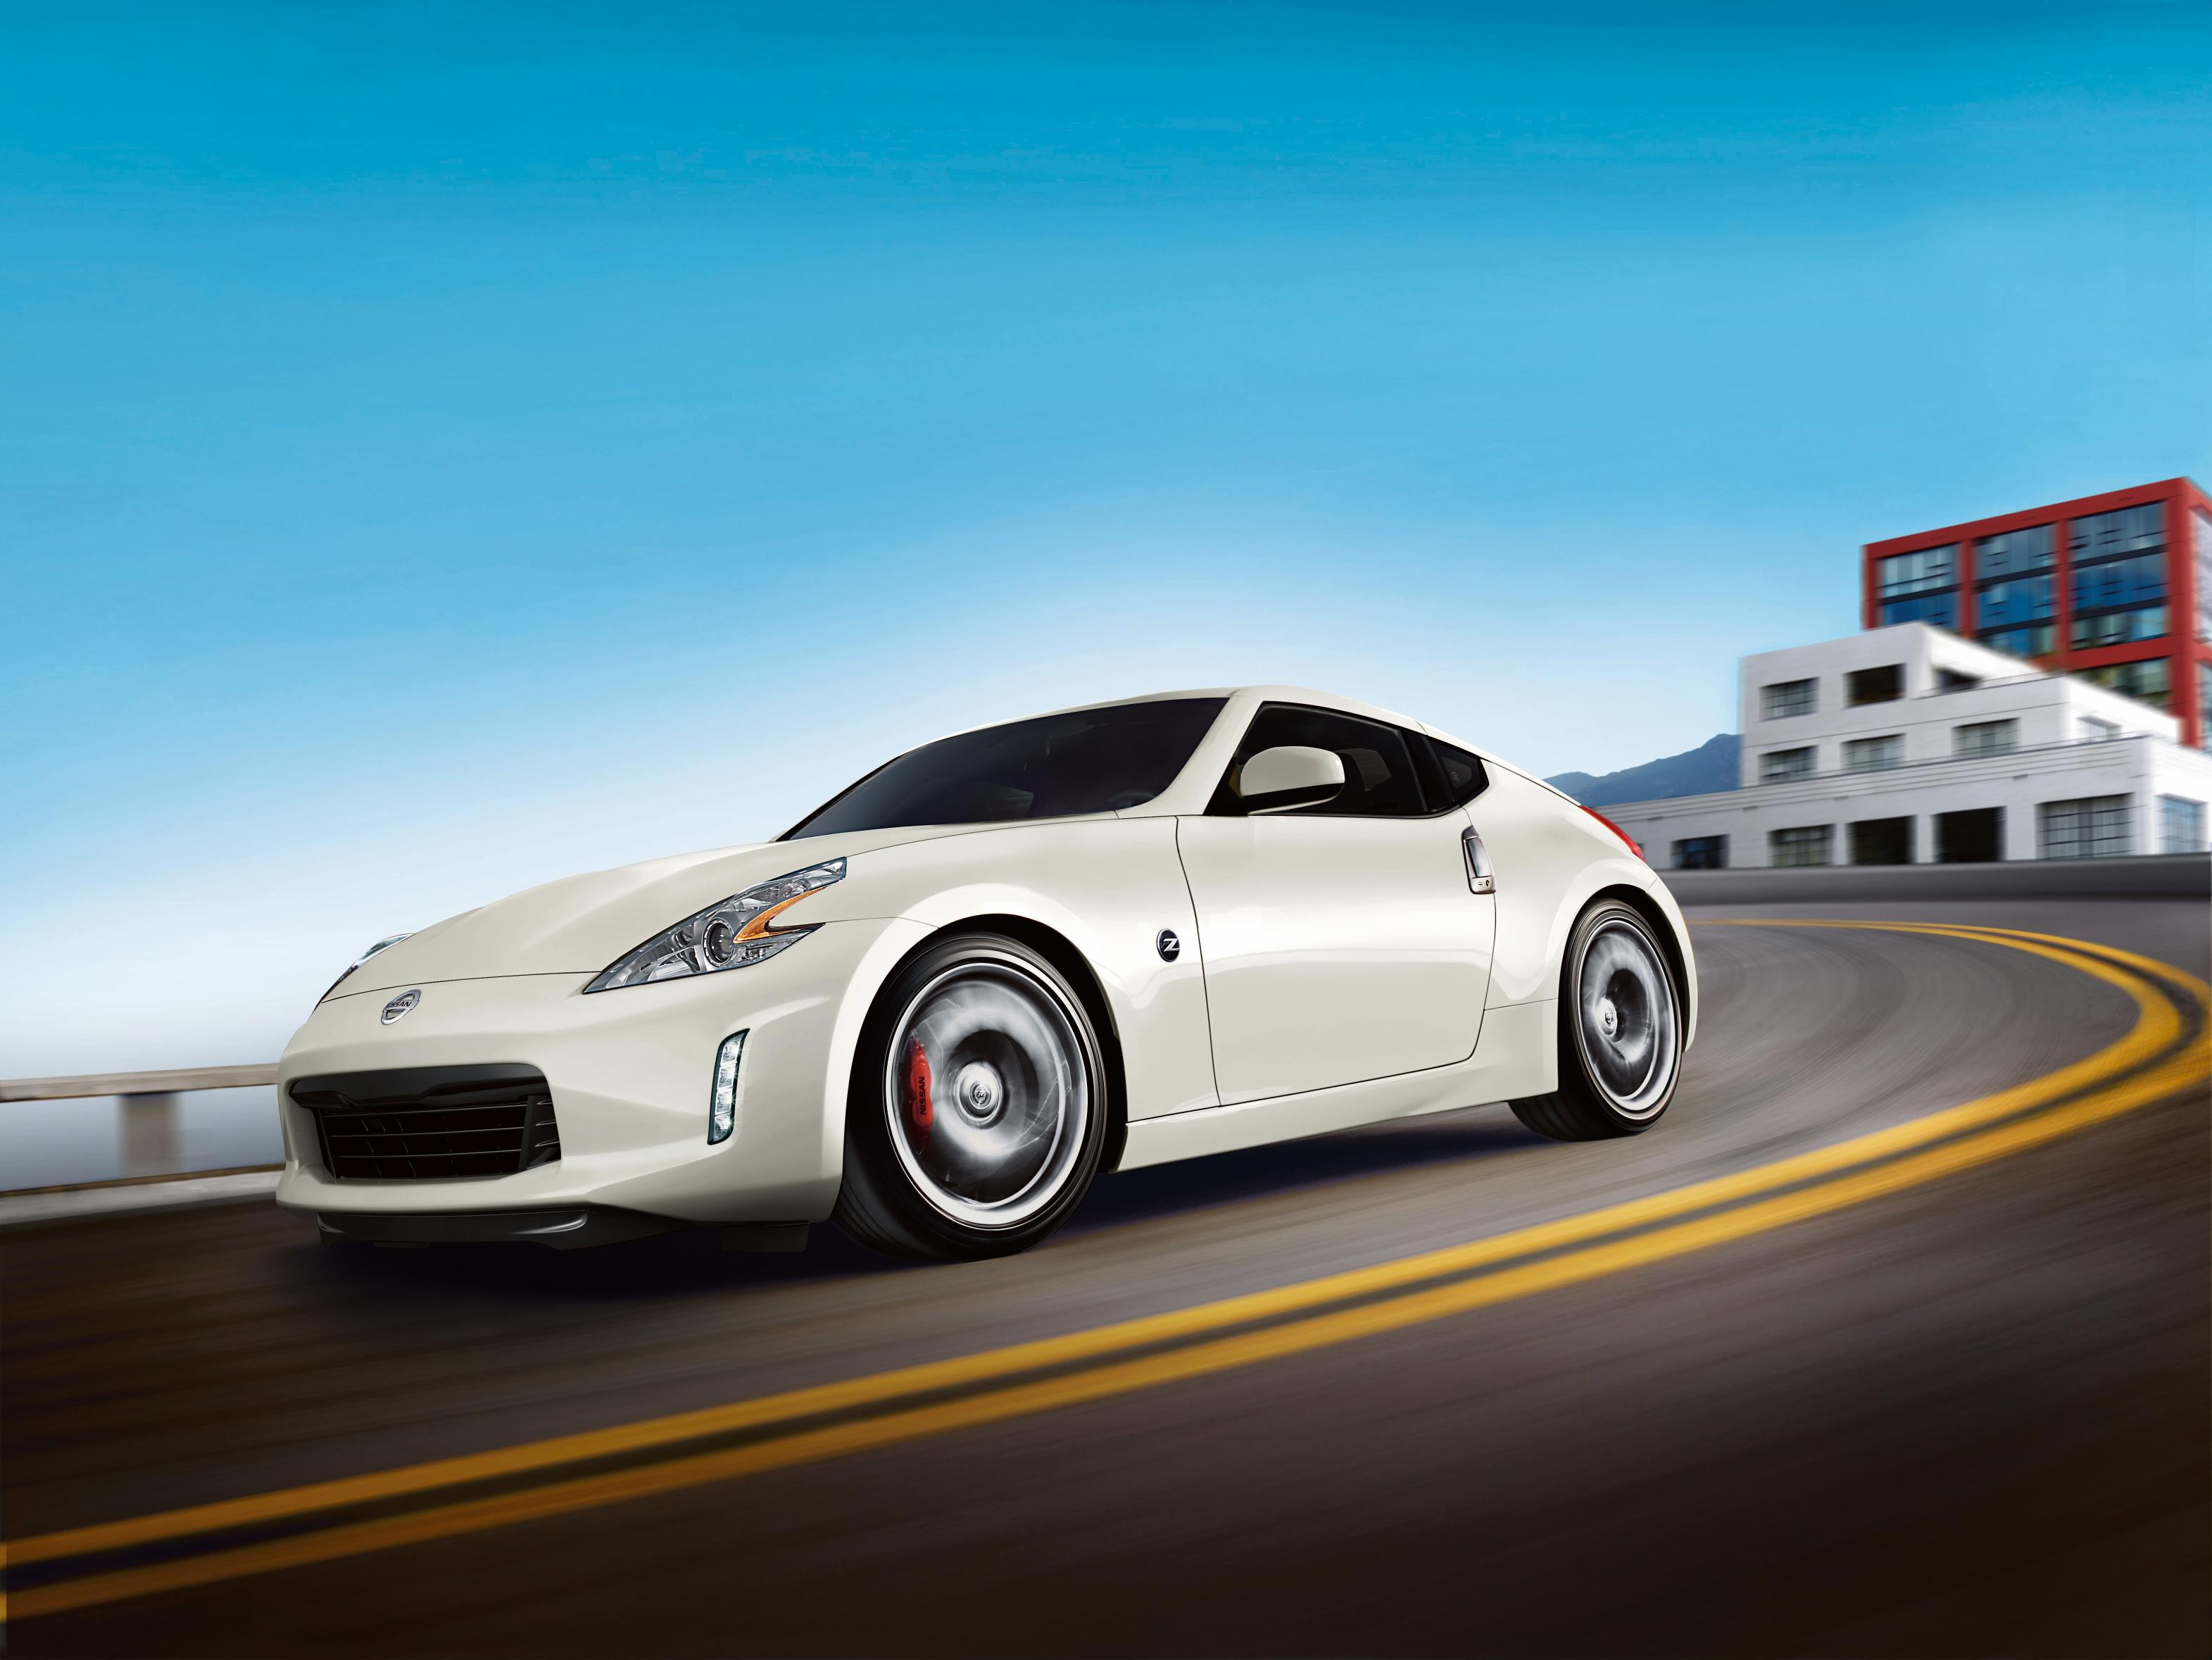 2017 nissan 370z priced from 30 825 most expensive model. Black Bedroom Furniture Sets. Home Design Ideas